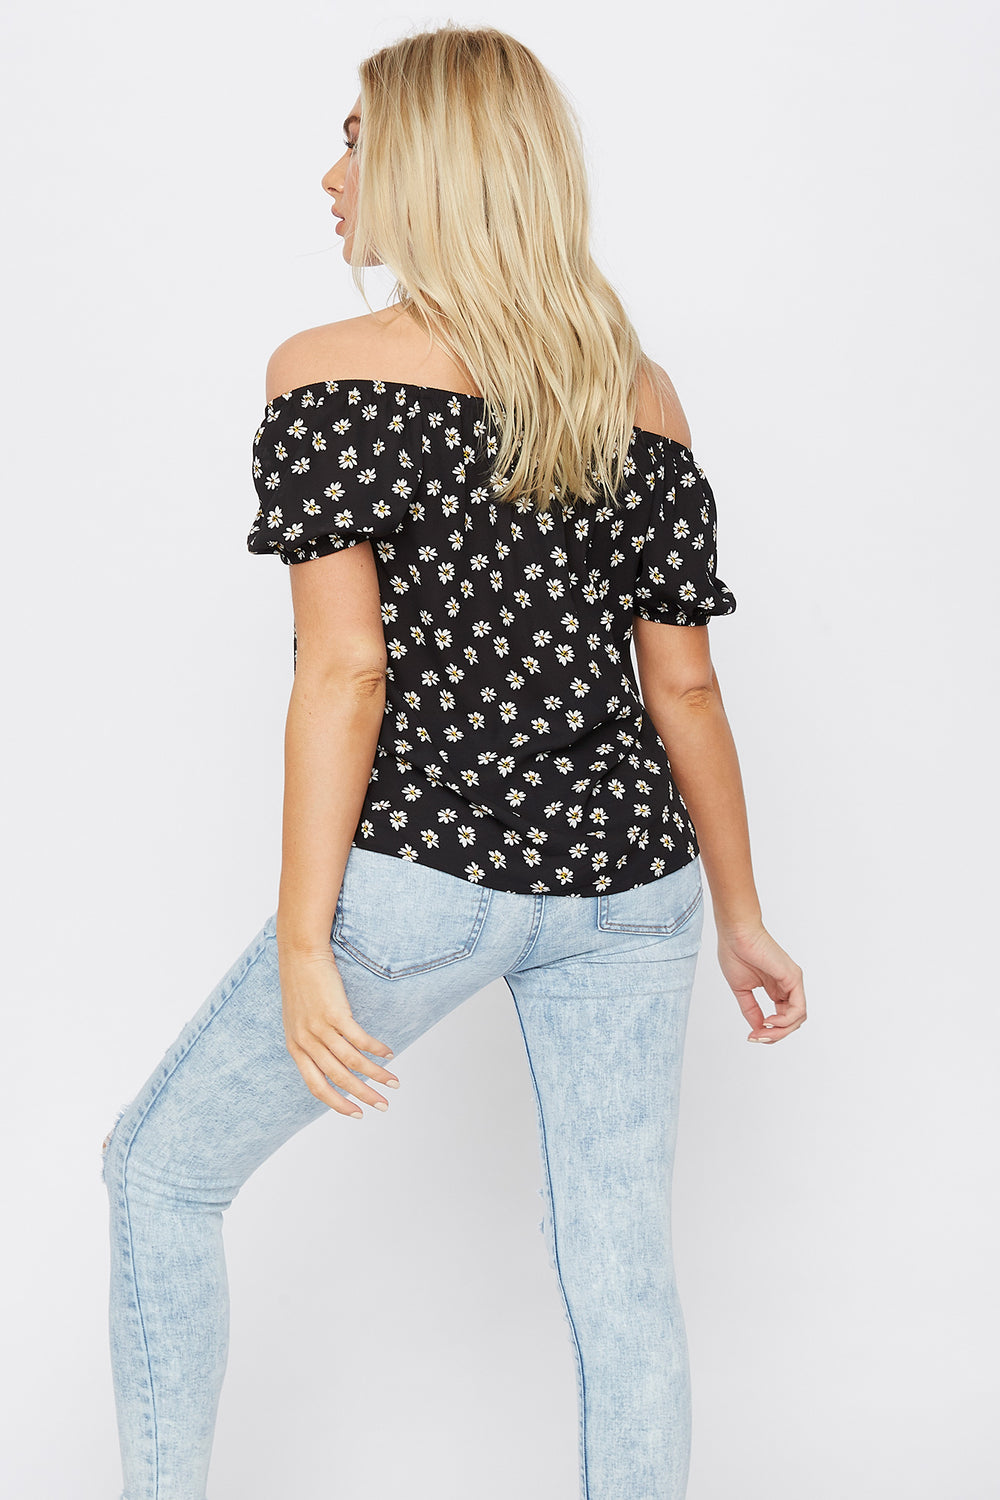 Floral Off The Shoulder Bow Top Black